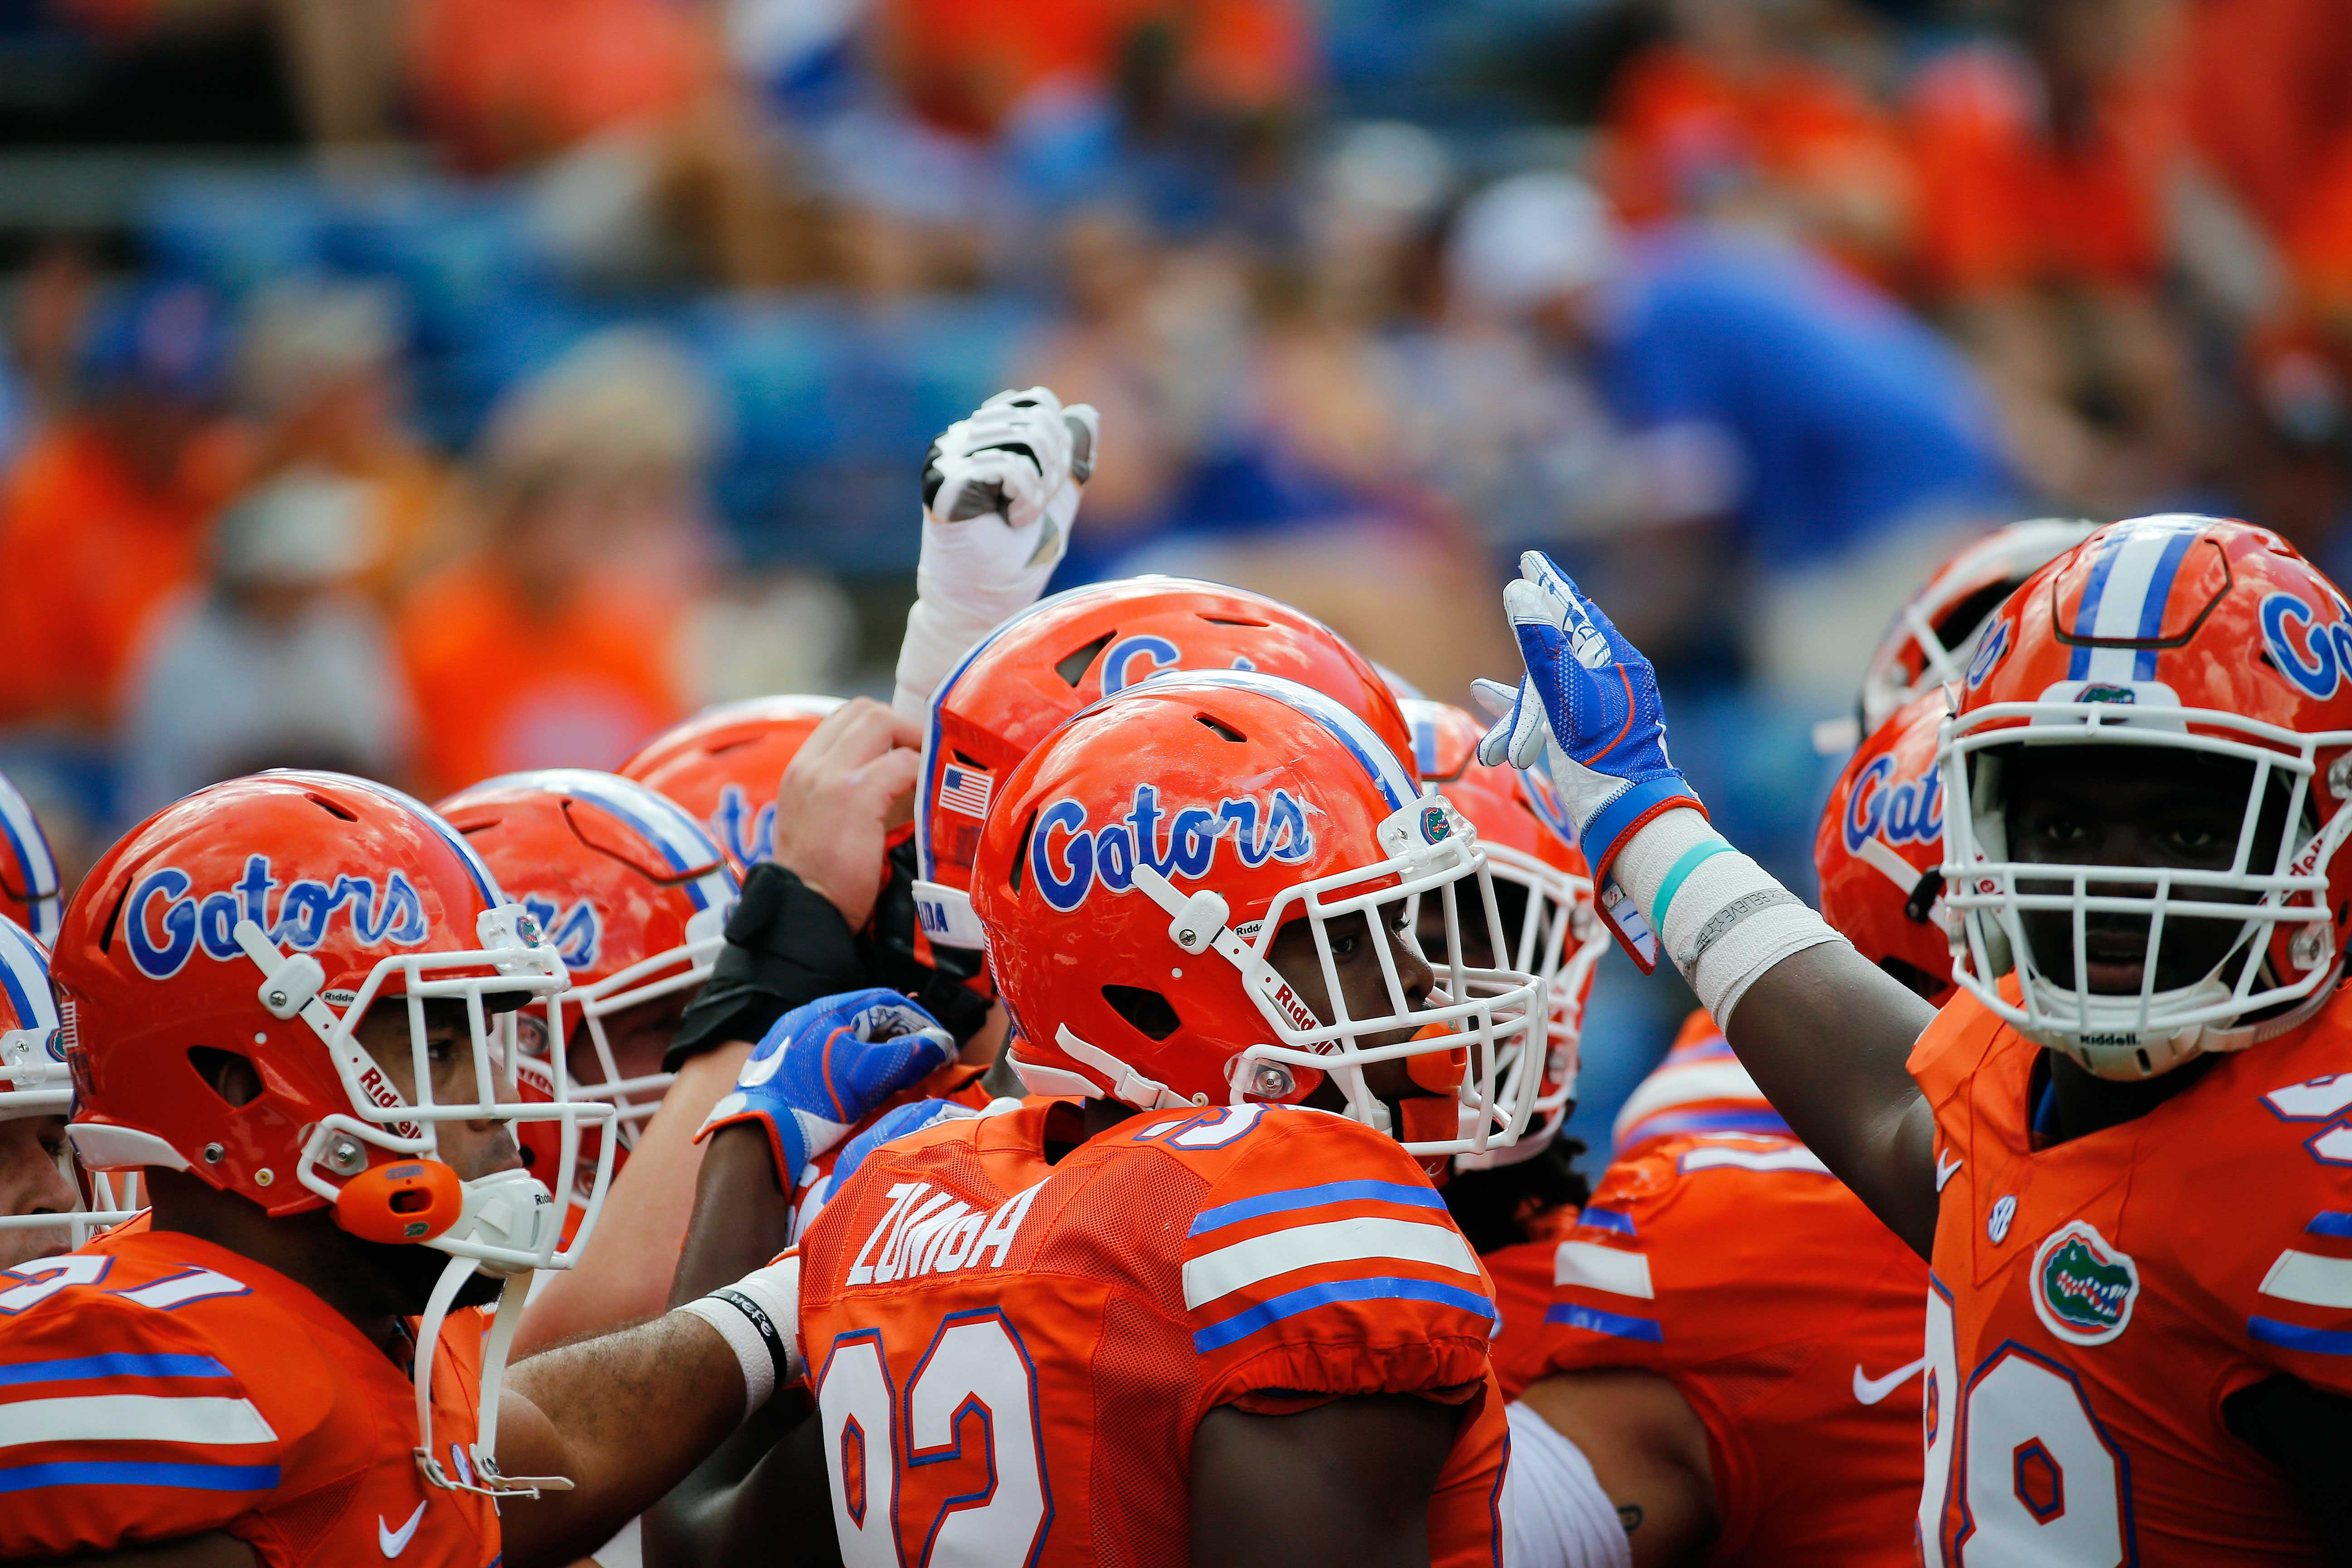 LAMM AT LARGE: Stakes going up and up for Gators